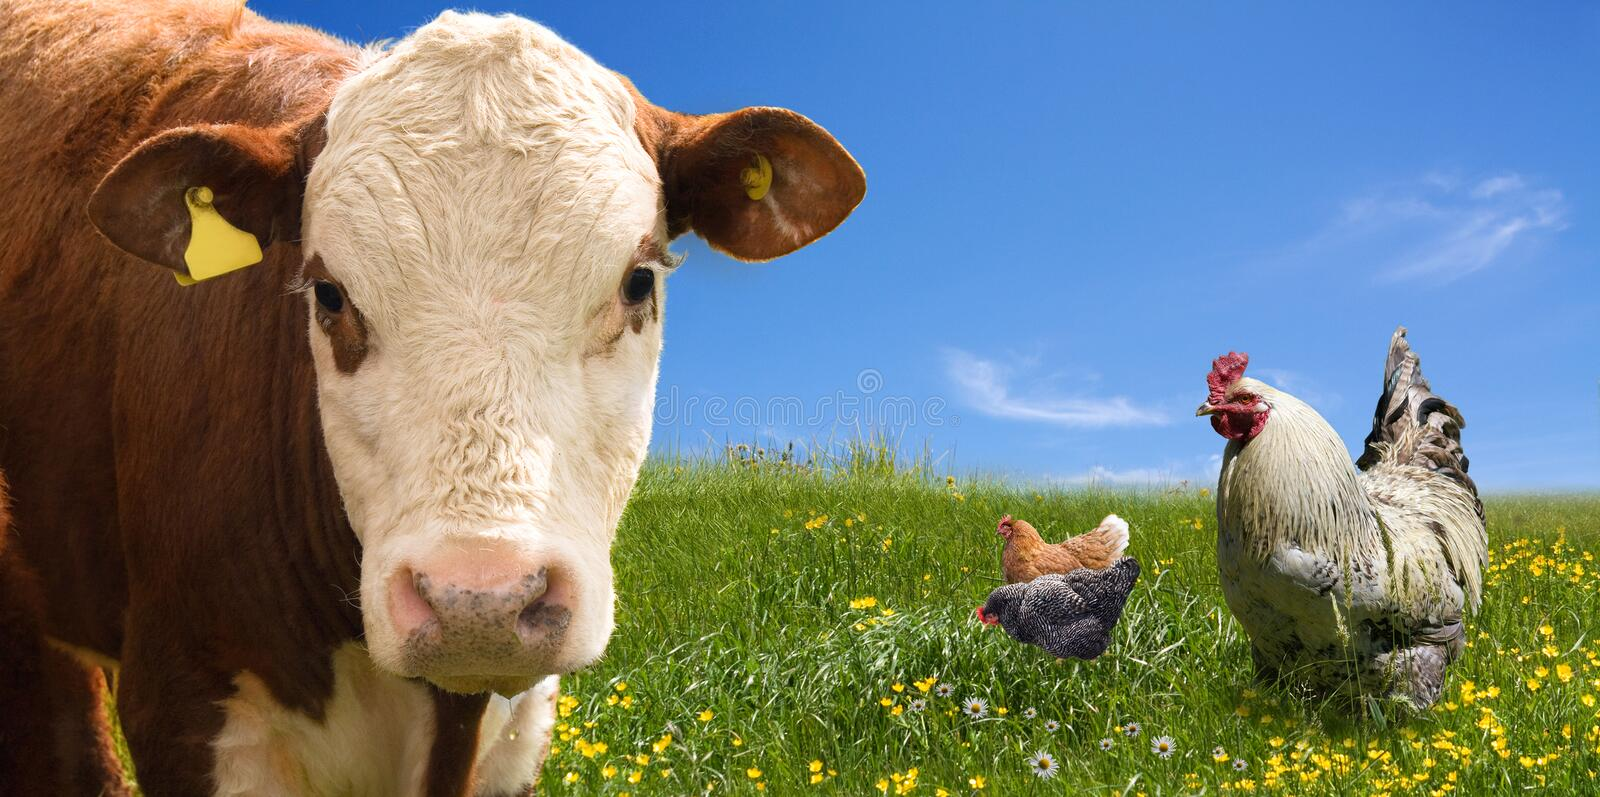 Farm animals on green field. Farm animals - chickens, and cow on the green field